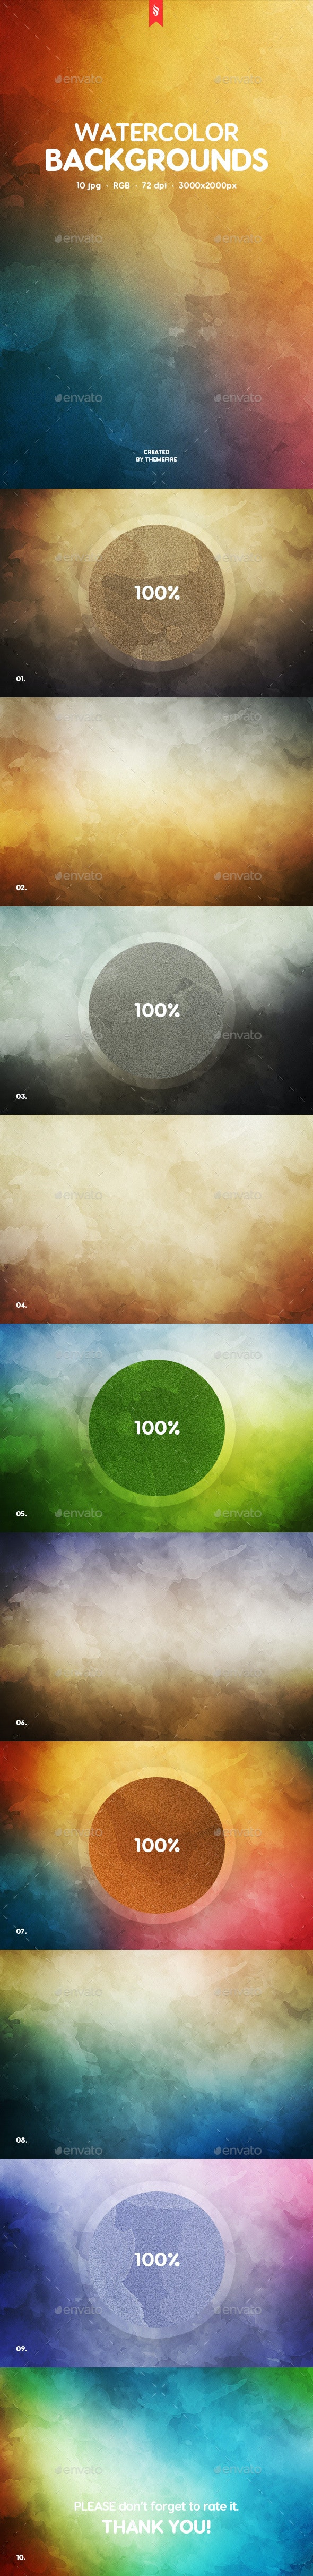 10 Watercolor Backgrounds - Abstract Backgrounds